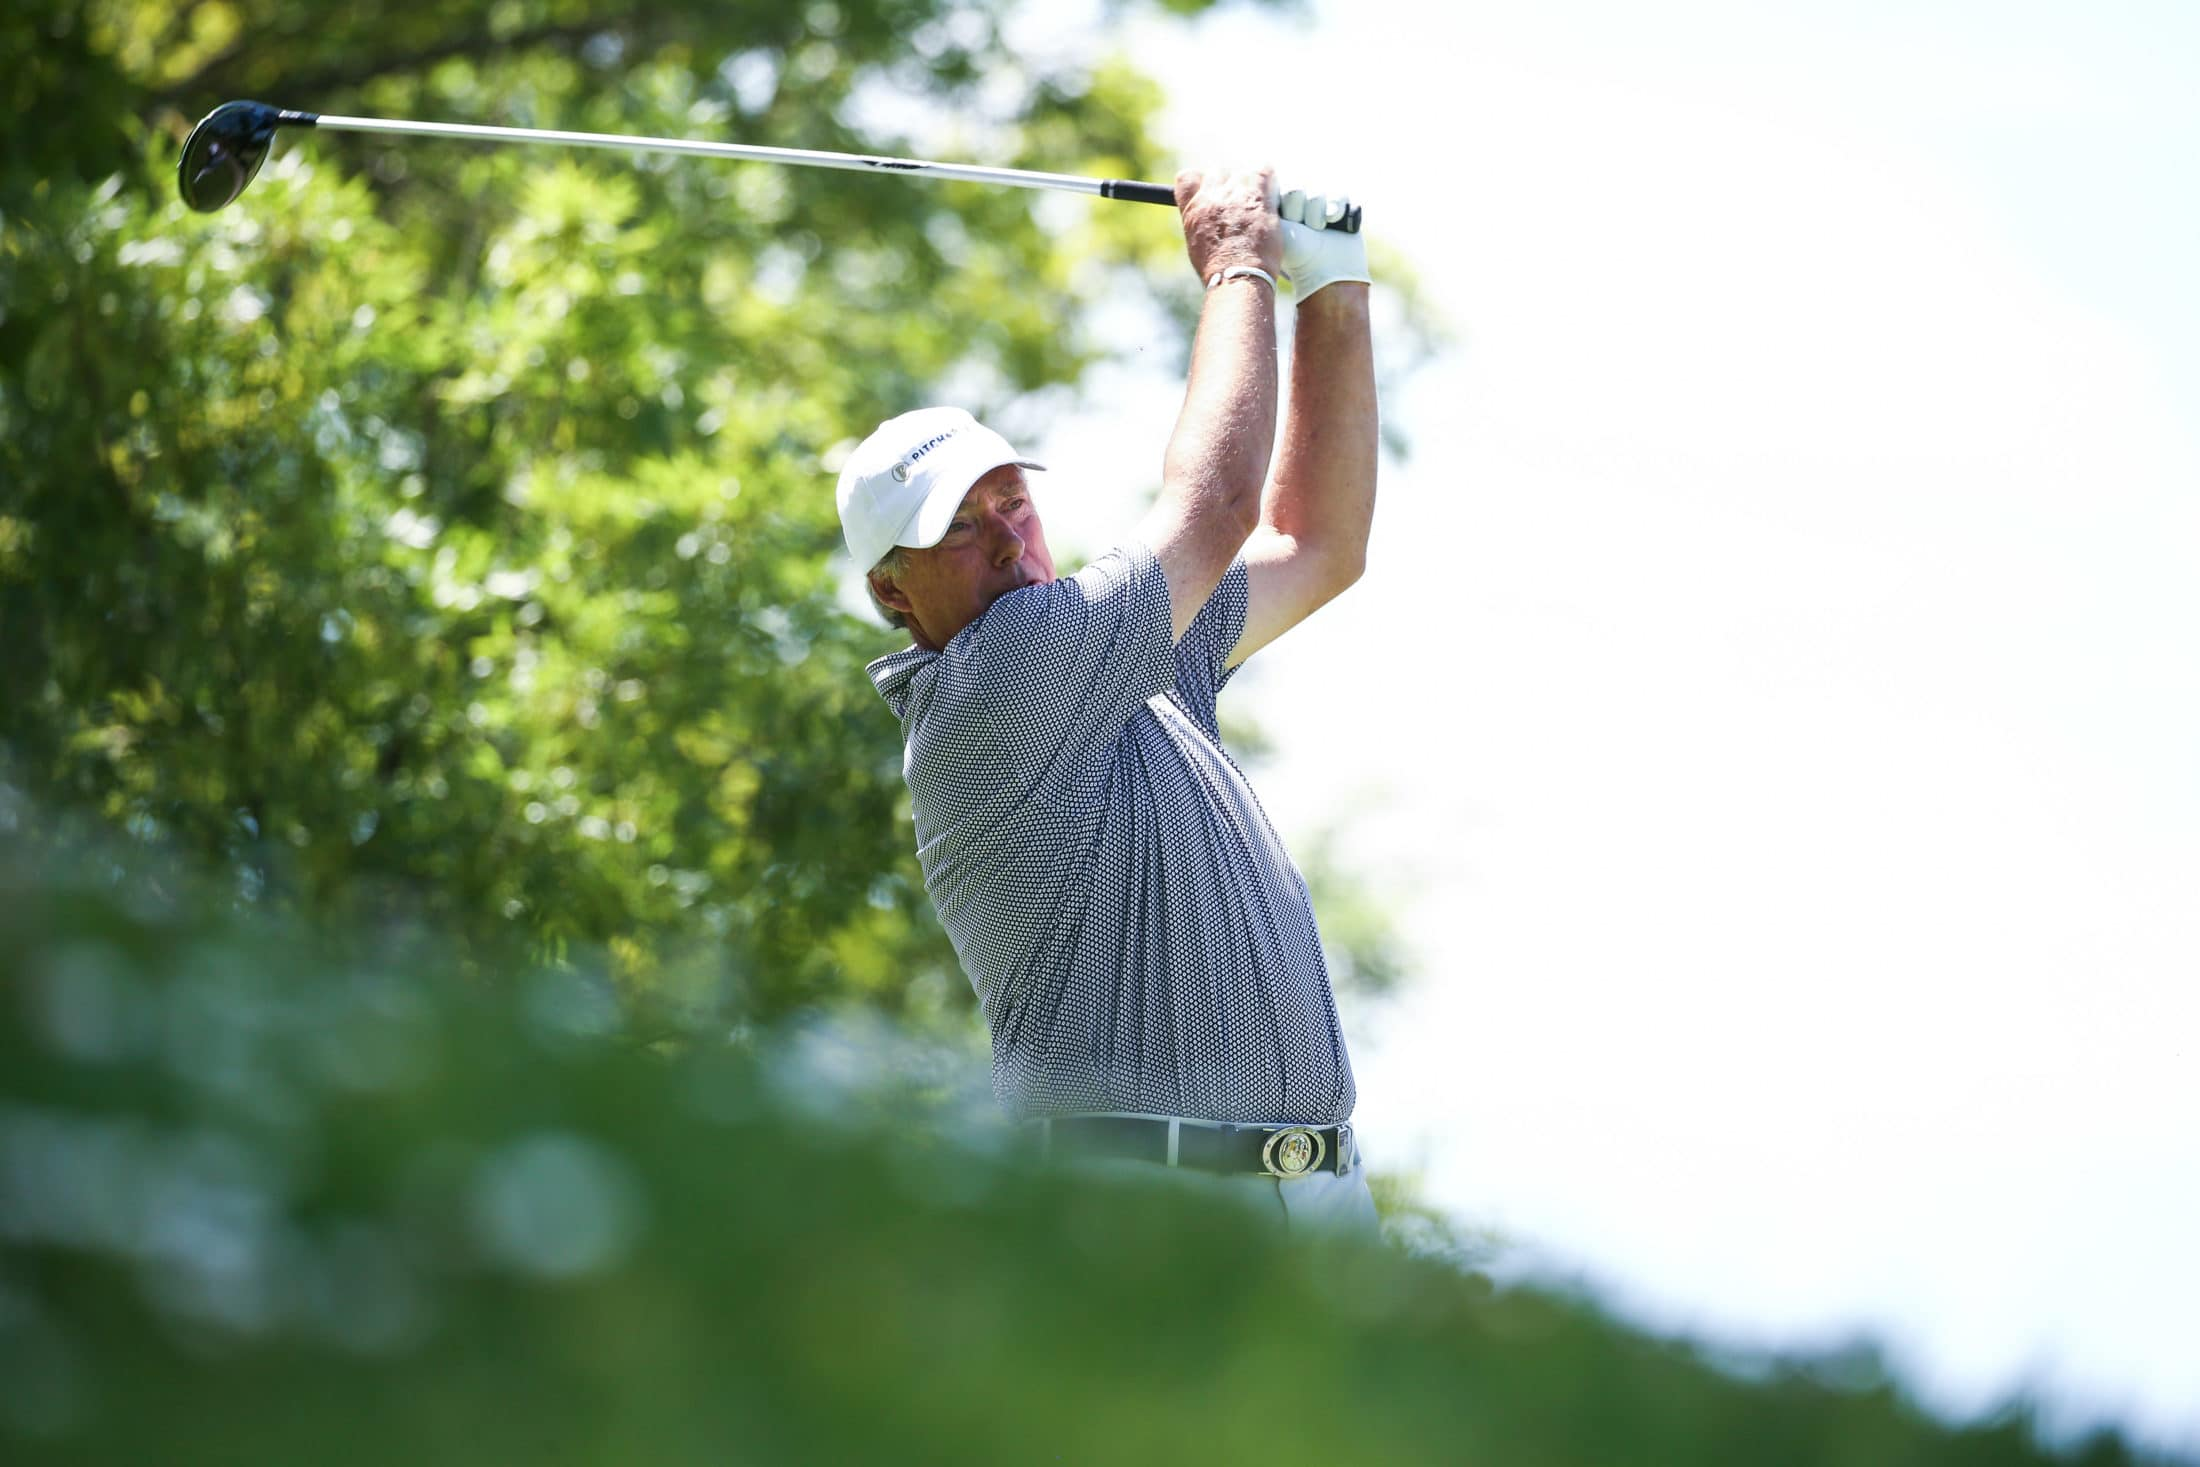 UDINE,ITALY,31.MAY.19 - GOLF - Staysure Tour, Senior Italian Open, Golf Club Udine. Image shows Barry Lane (ENG). Photo: GEPA pictures/ Daniel Goetzhaber